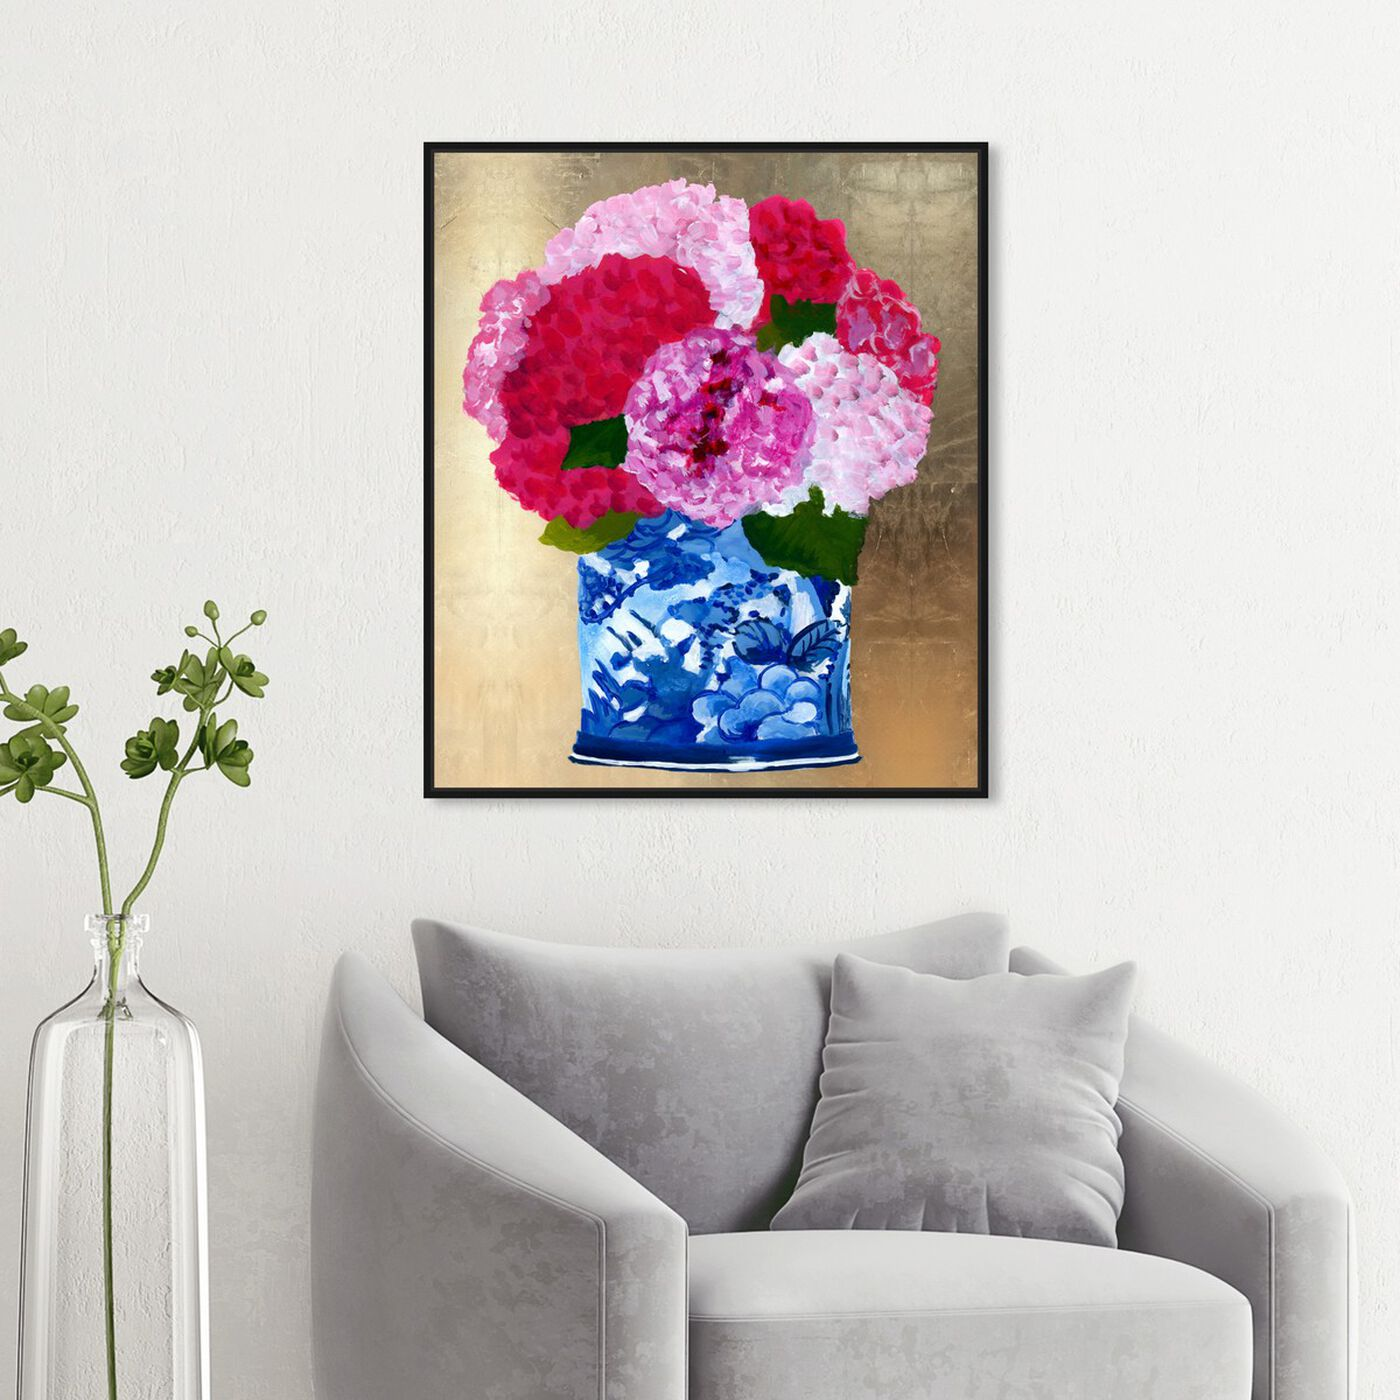 Hanging view of Julianne Taylor - Hyndrangeas Vase Gold featuring floral and botanical and florals art.